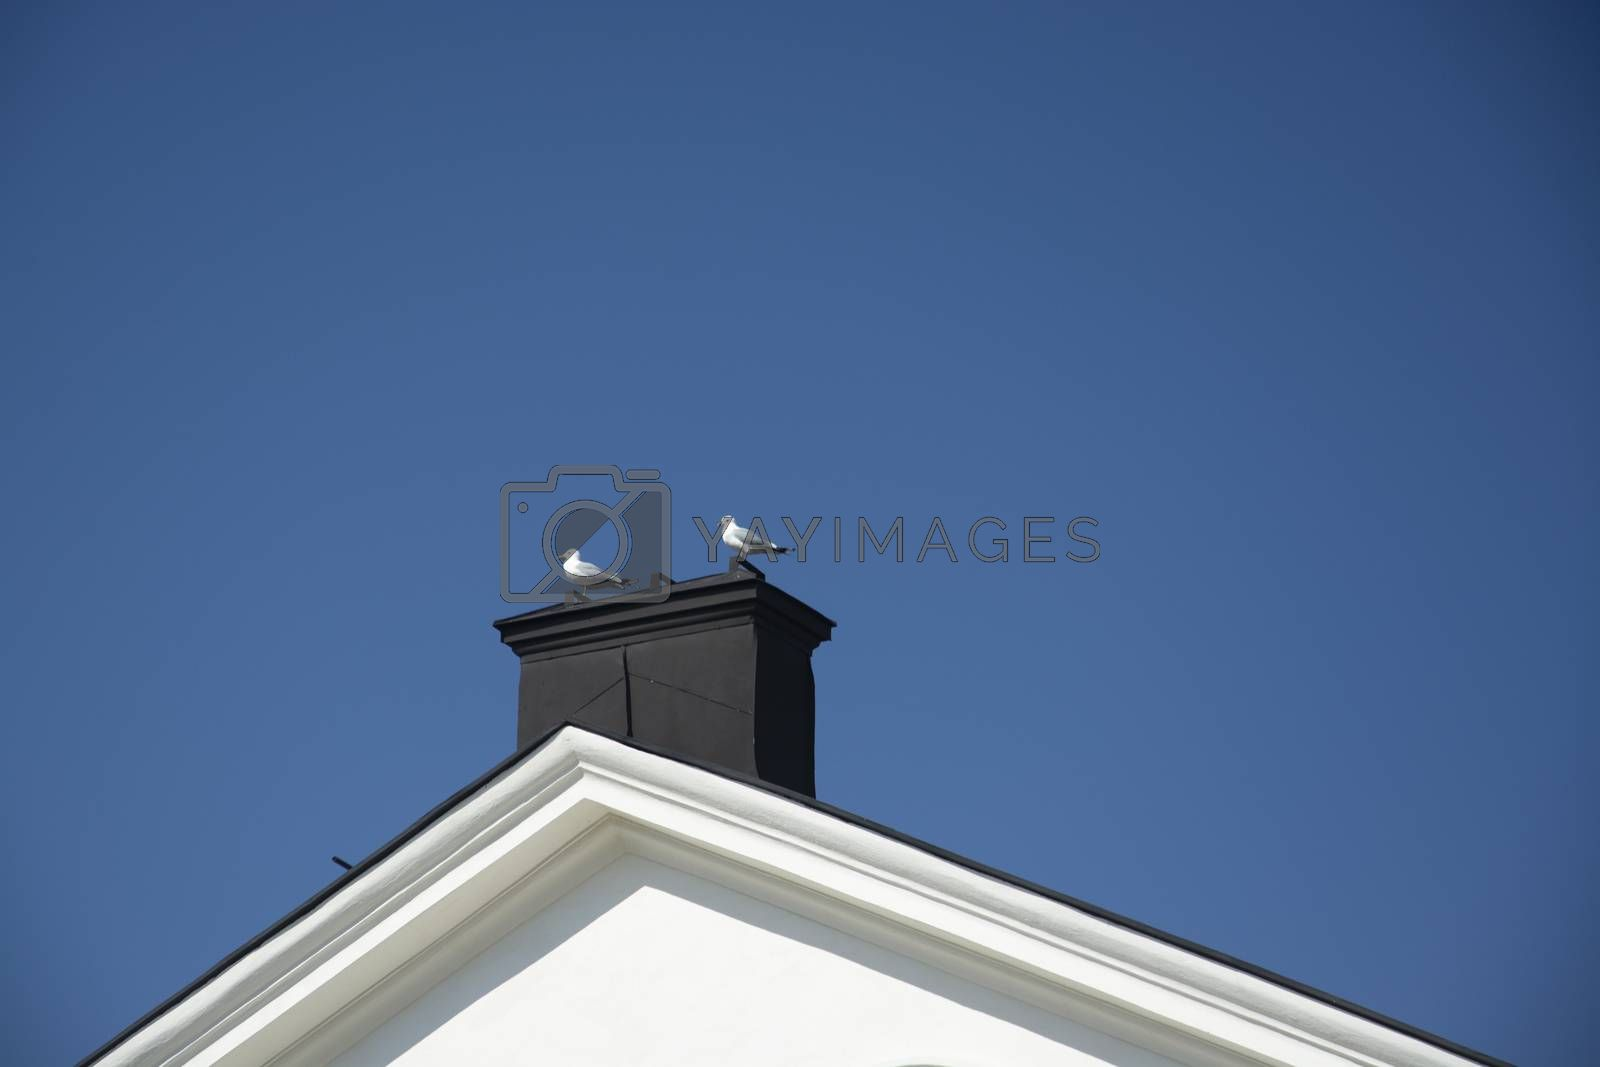 Two seagulls sitting on a chimney rooftop against blue sky on a sunny spring day in Stockholm, Sweden.